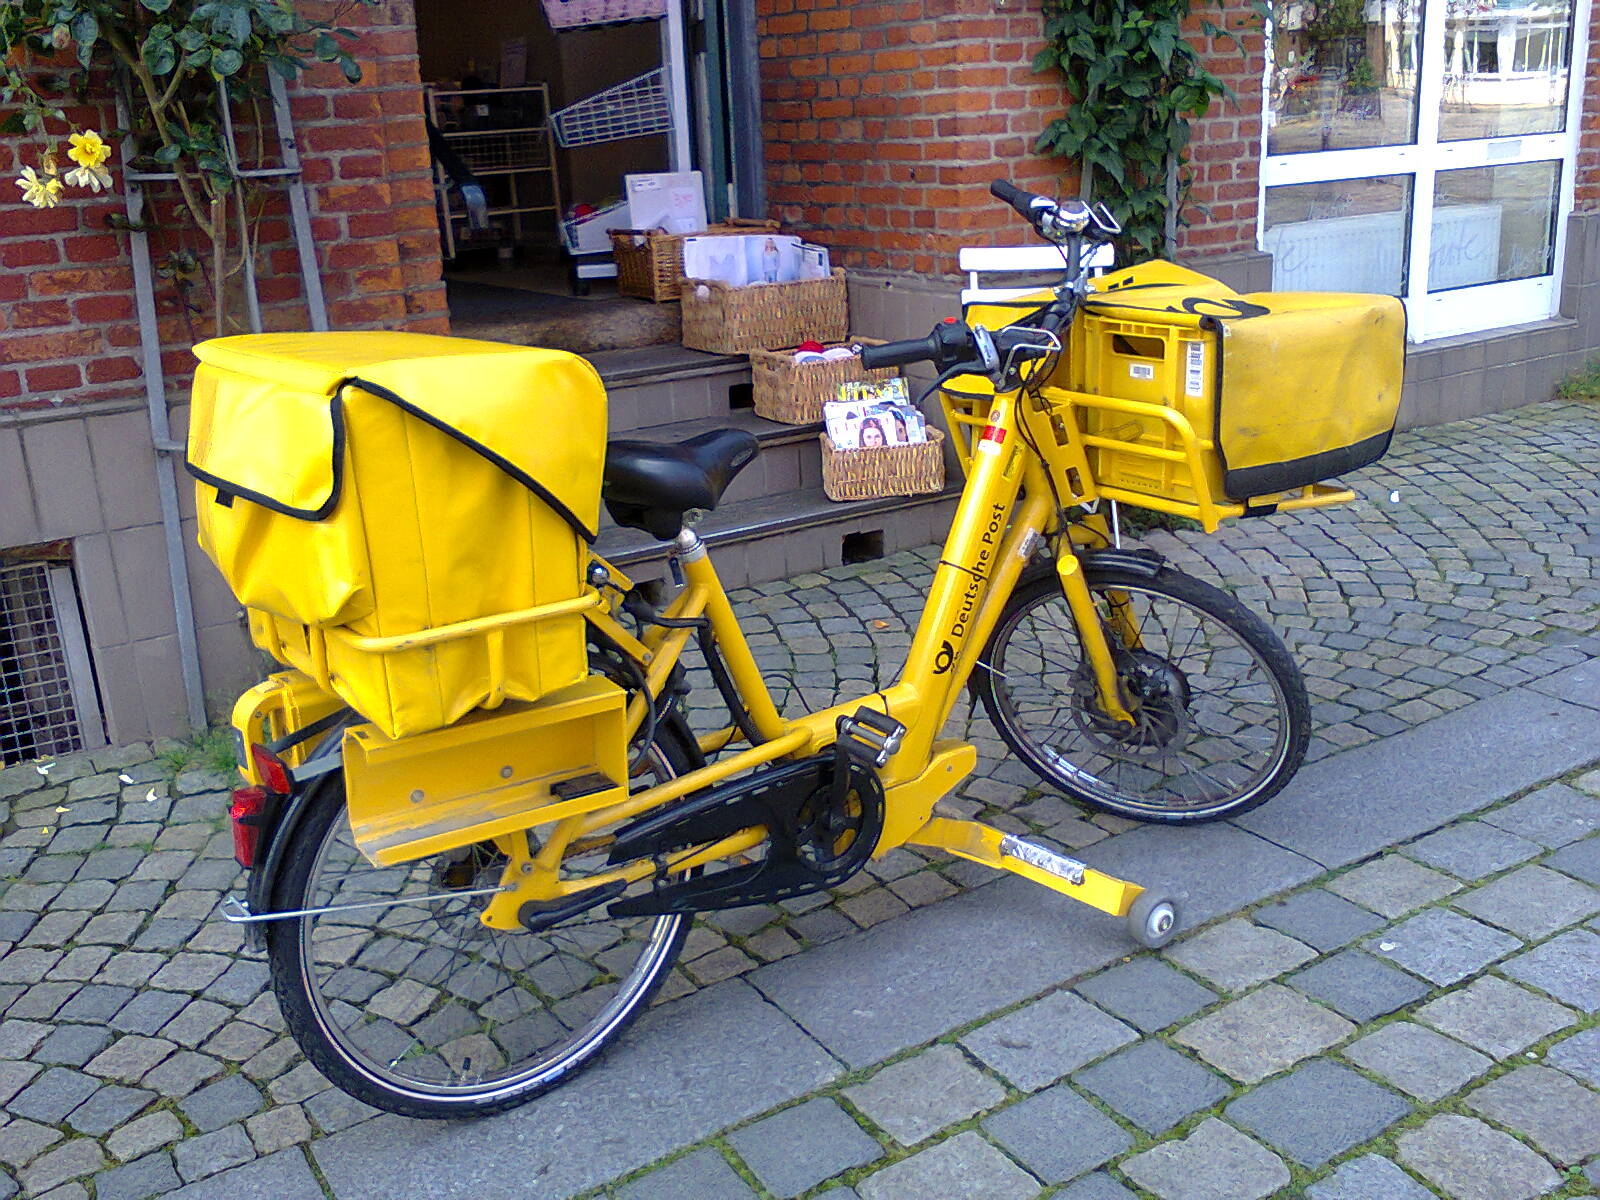 Deutsche Post delivery E-bike